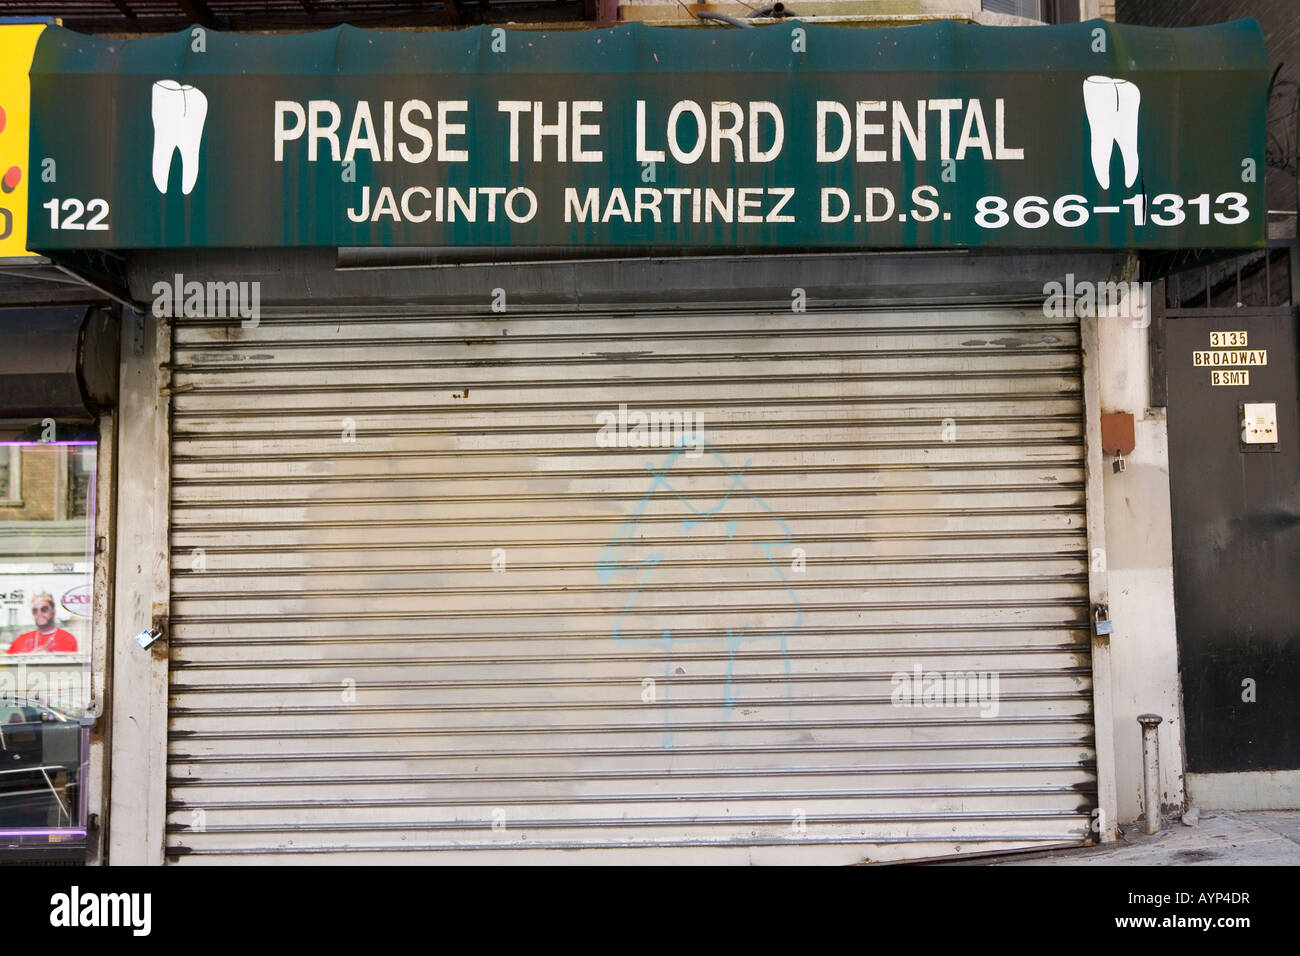 Praise The Lord Dental New York City - Stock Image